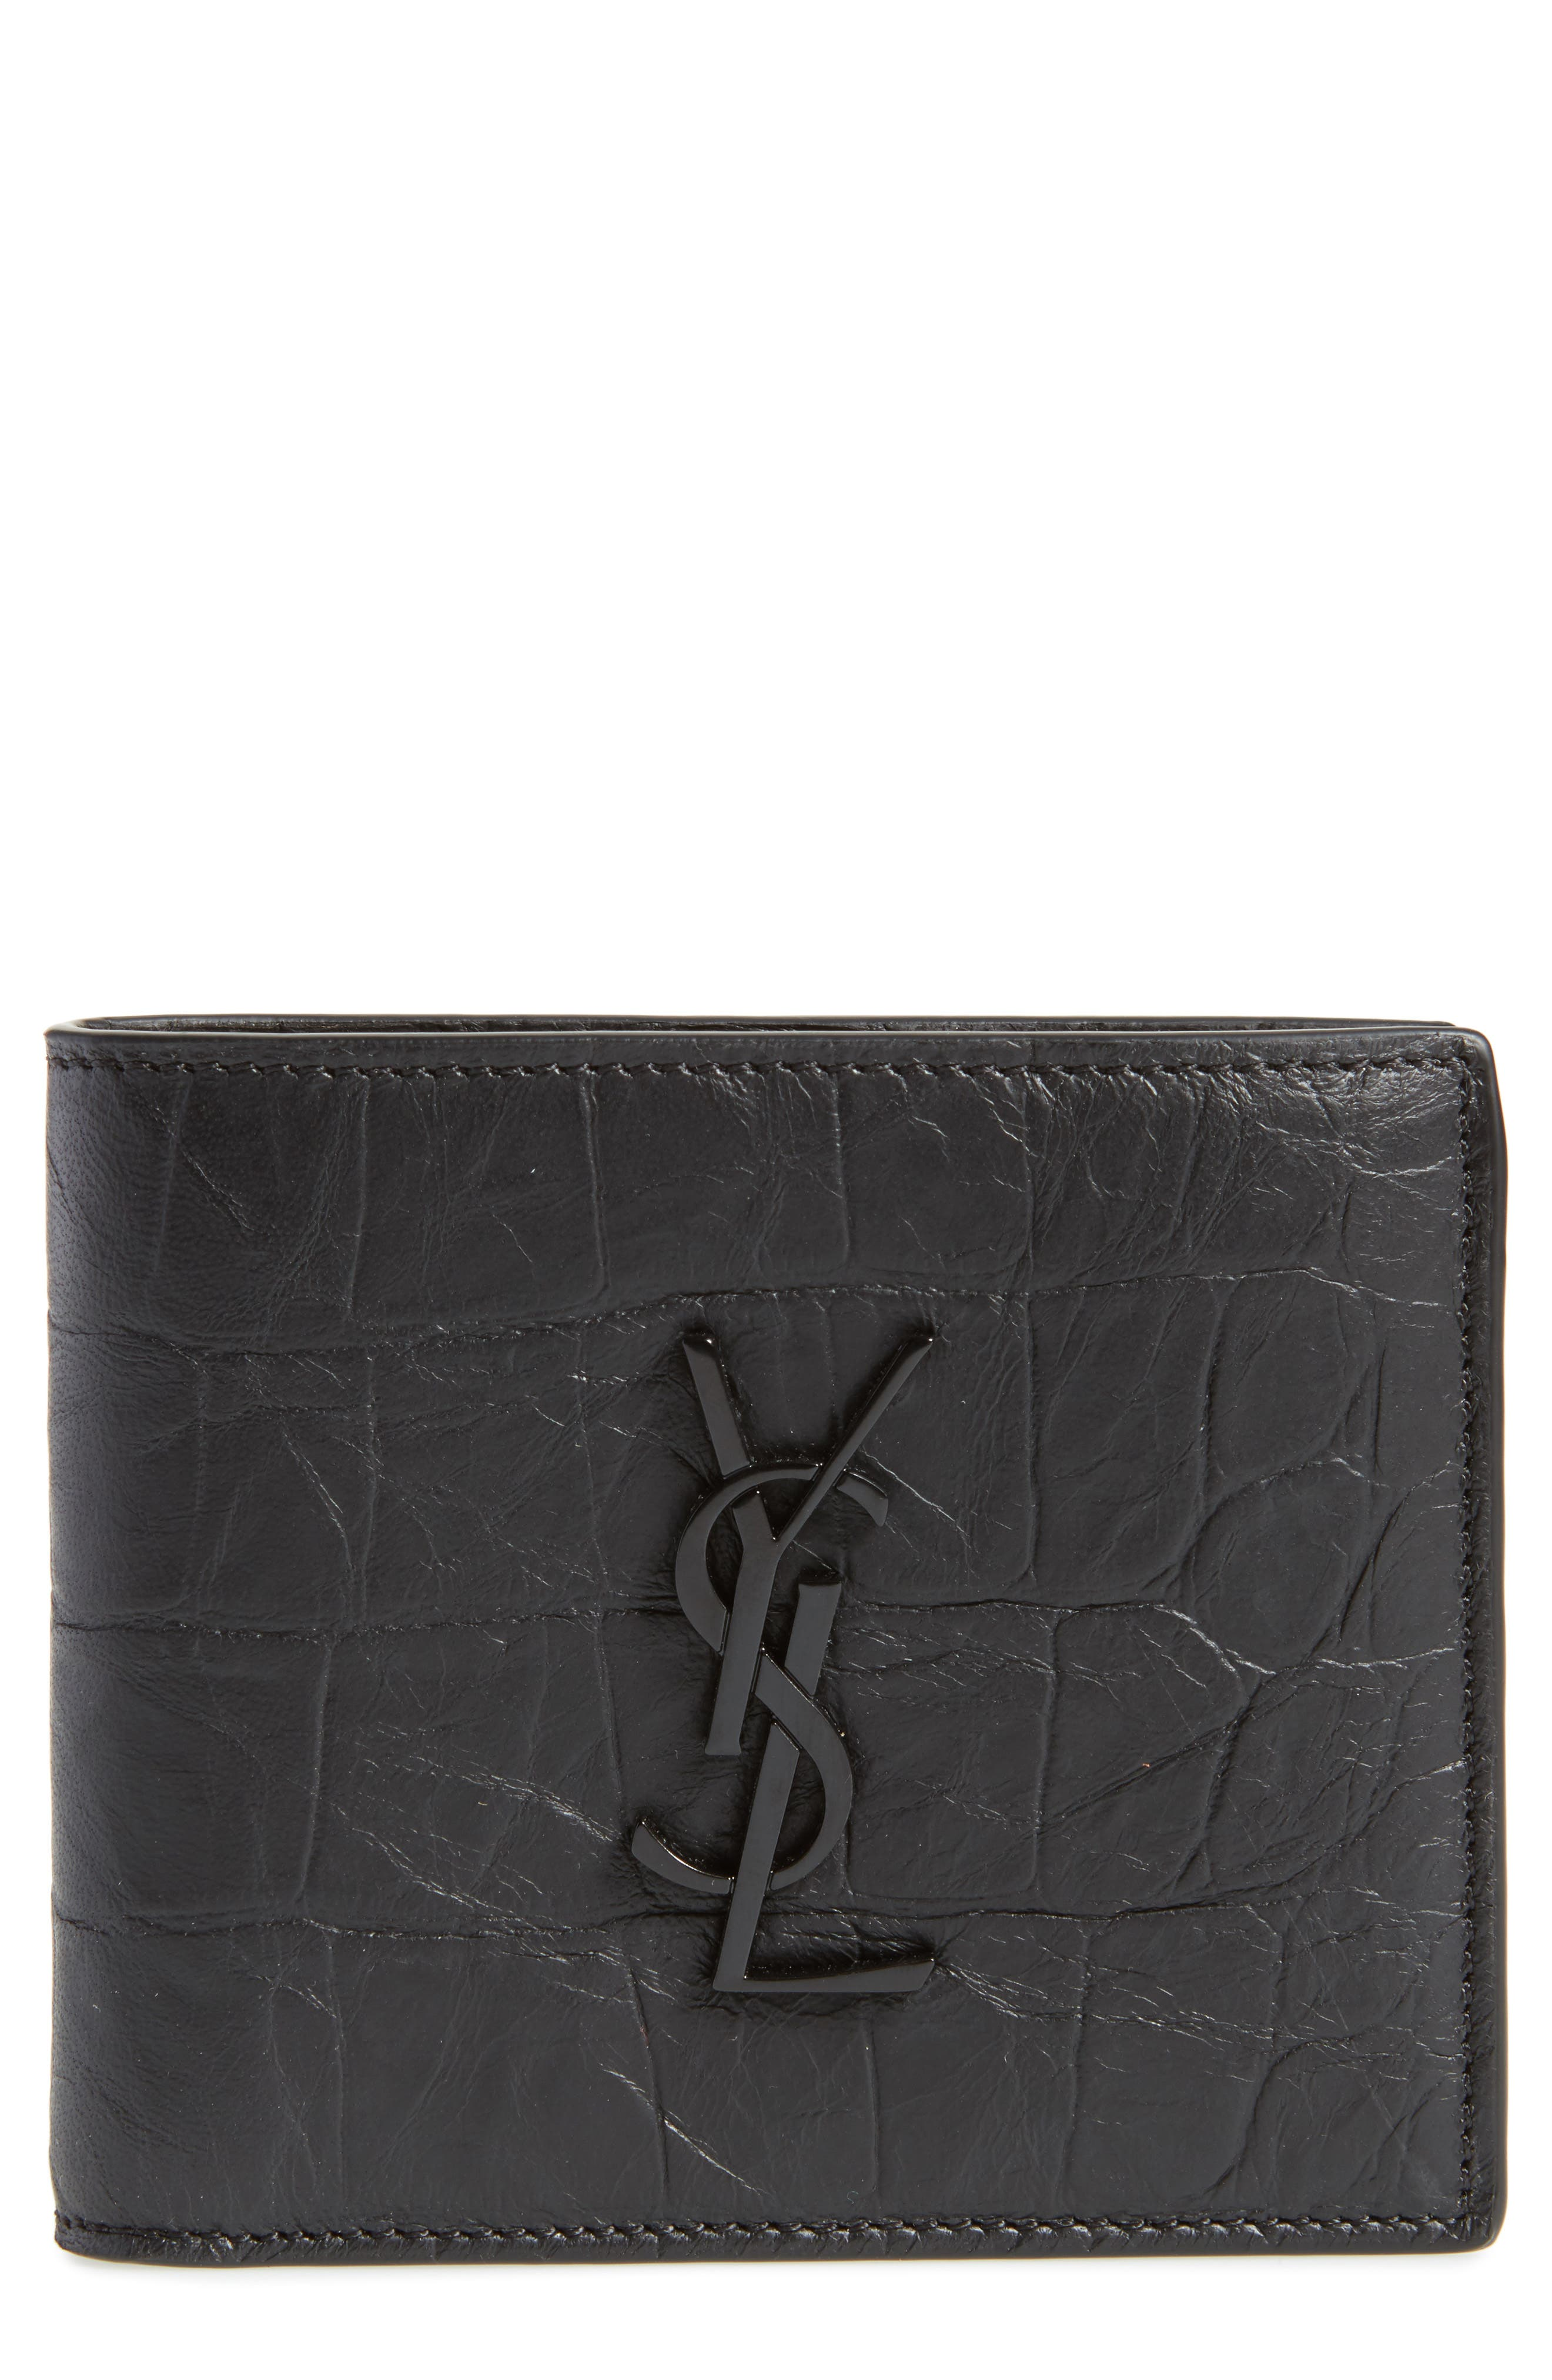 Croc Embossed Leather Wallet,                         Main,                         color, 001